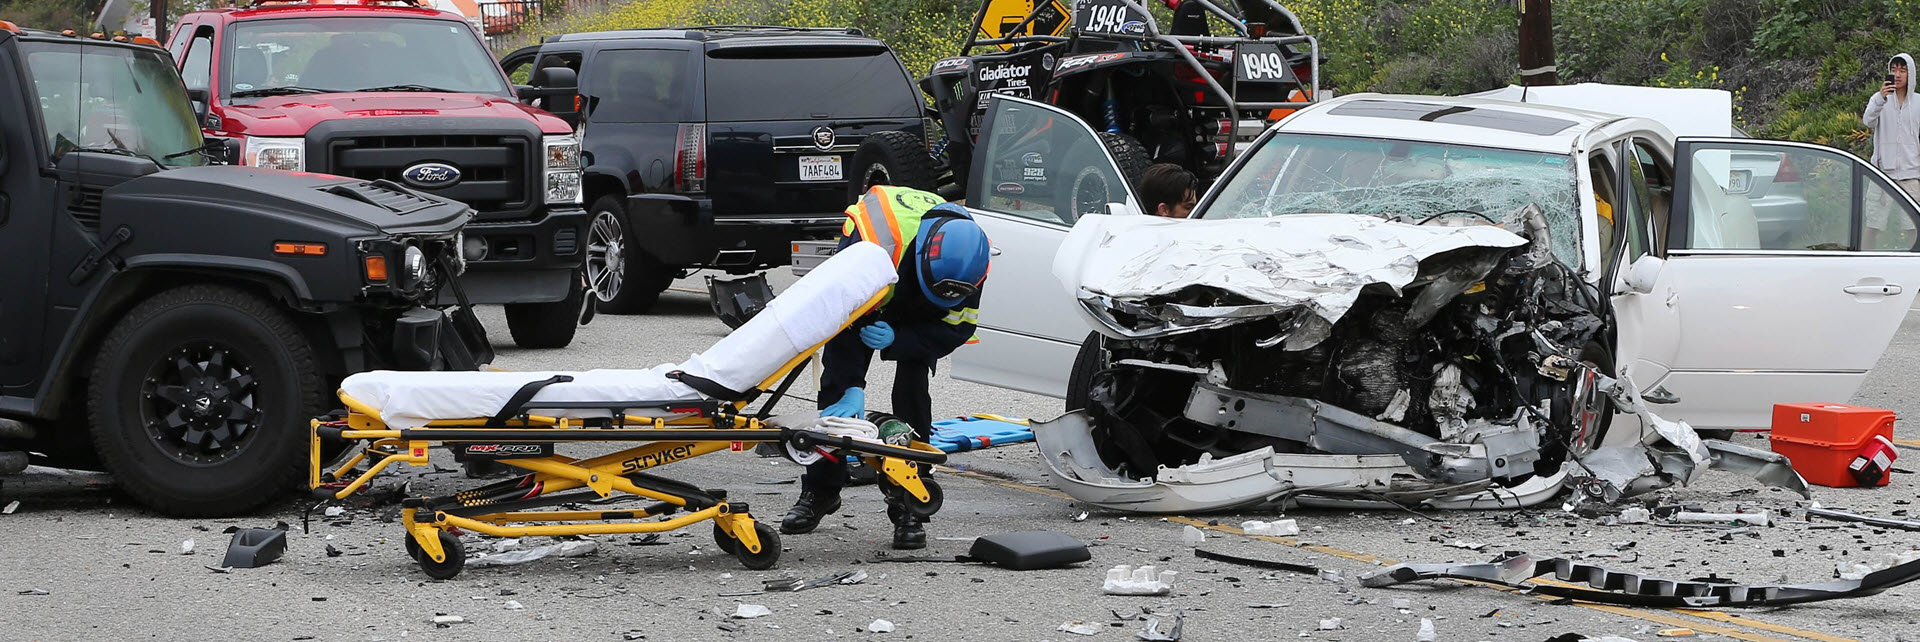 <p>Using the physical evidence and facts obtained through our investigation, Dynamic Safety L.L.C. specializes in collision reconstruction.</p>